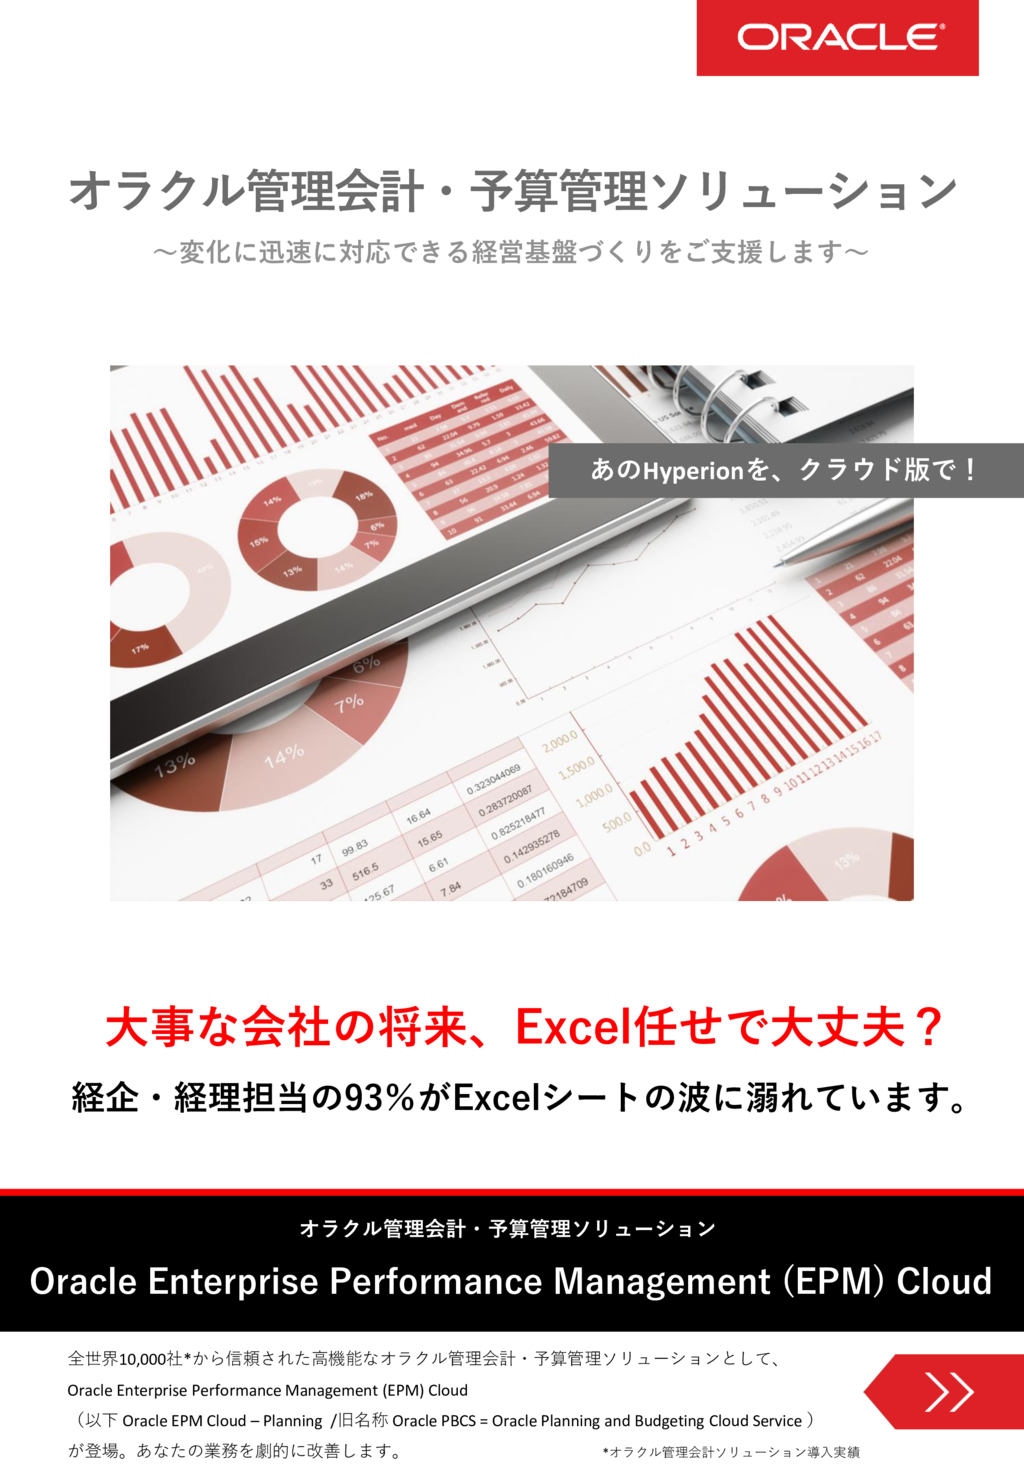 Oracle EPM Cloud-Planning (PBCS)の資料